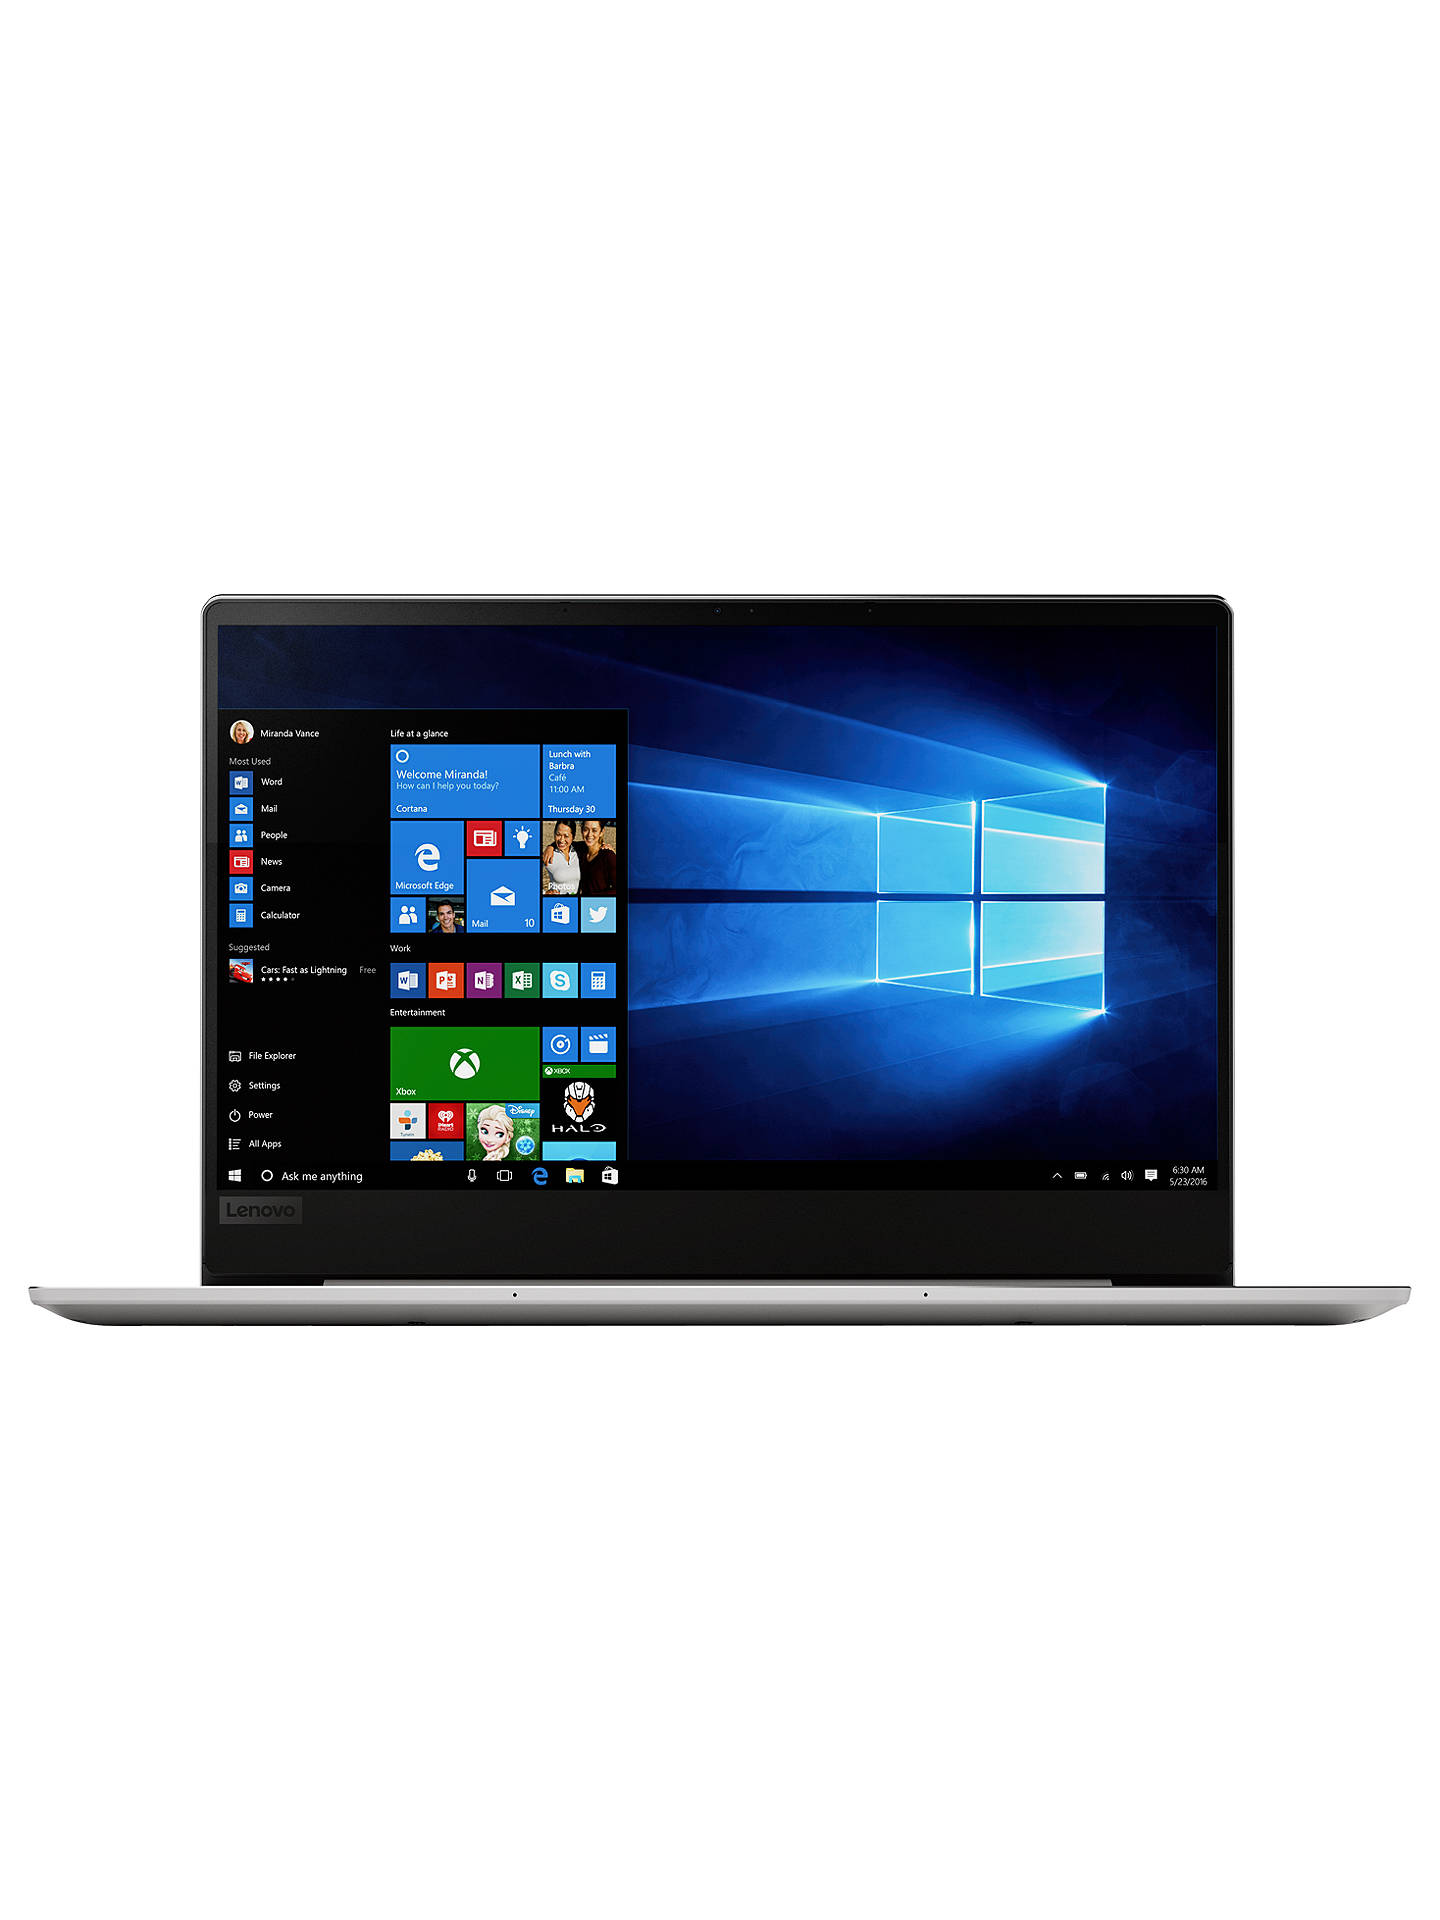 Lenovo IdeaPad 720S 81BR000BUK Laptop, AMD Ryzen 7, 8GB, 256GB M 2